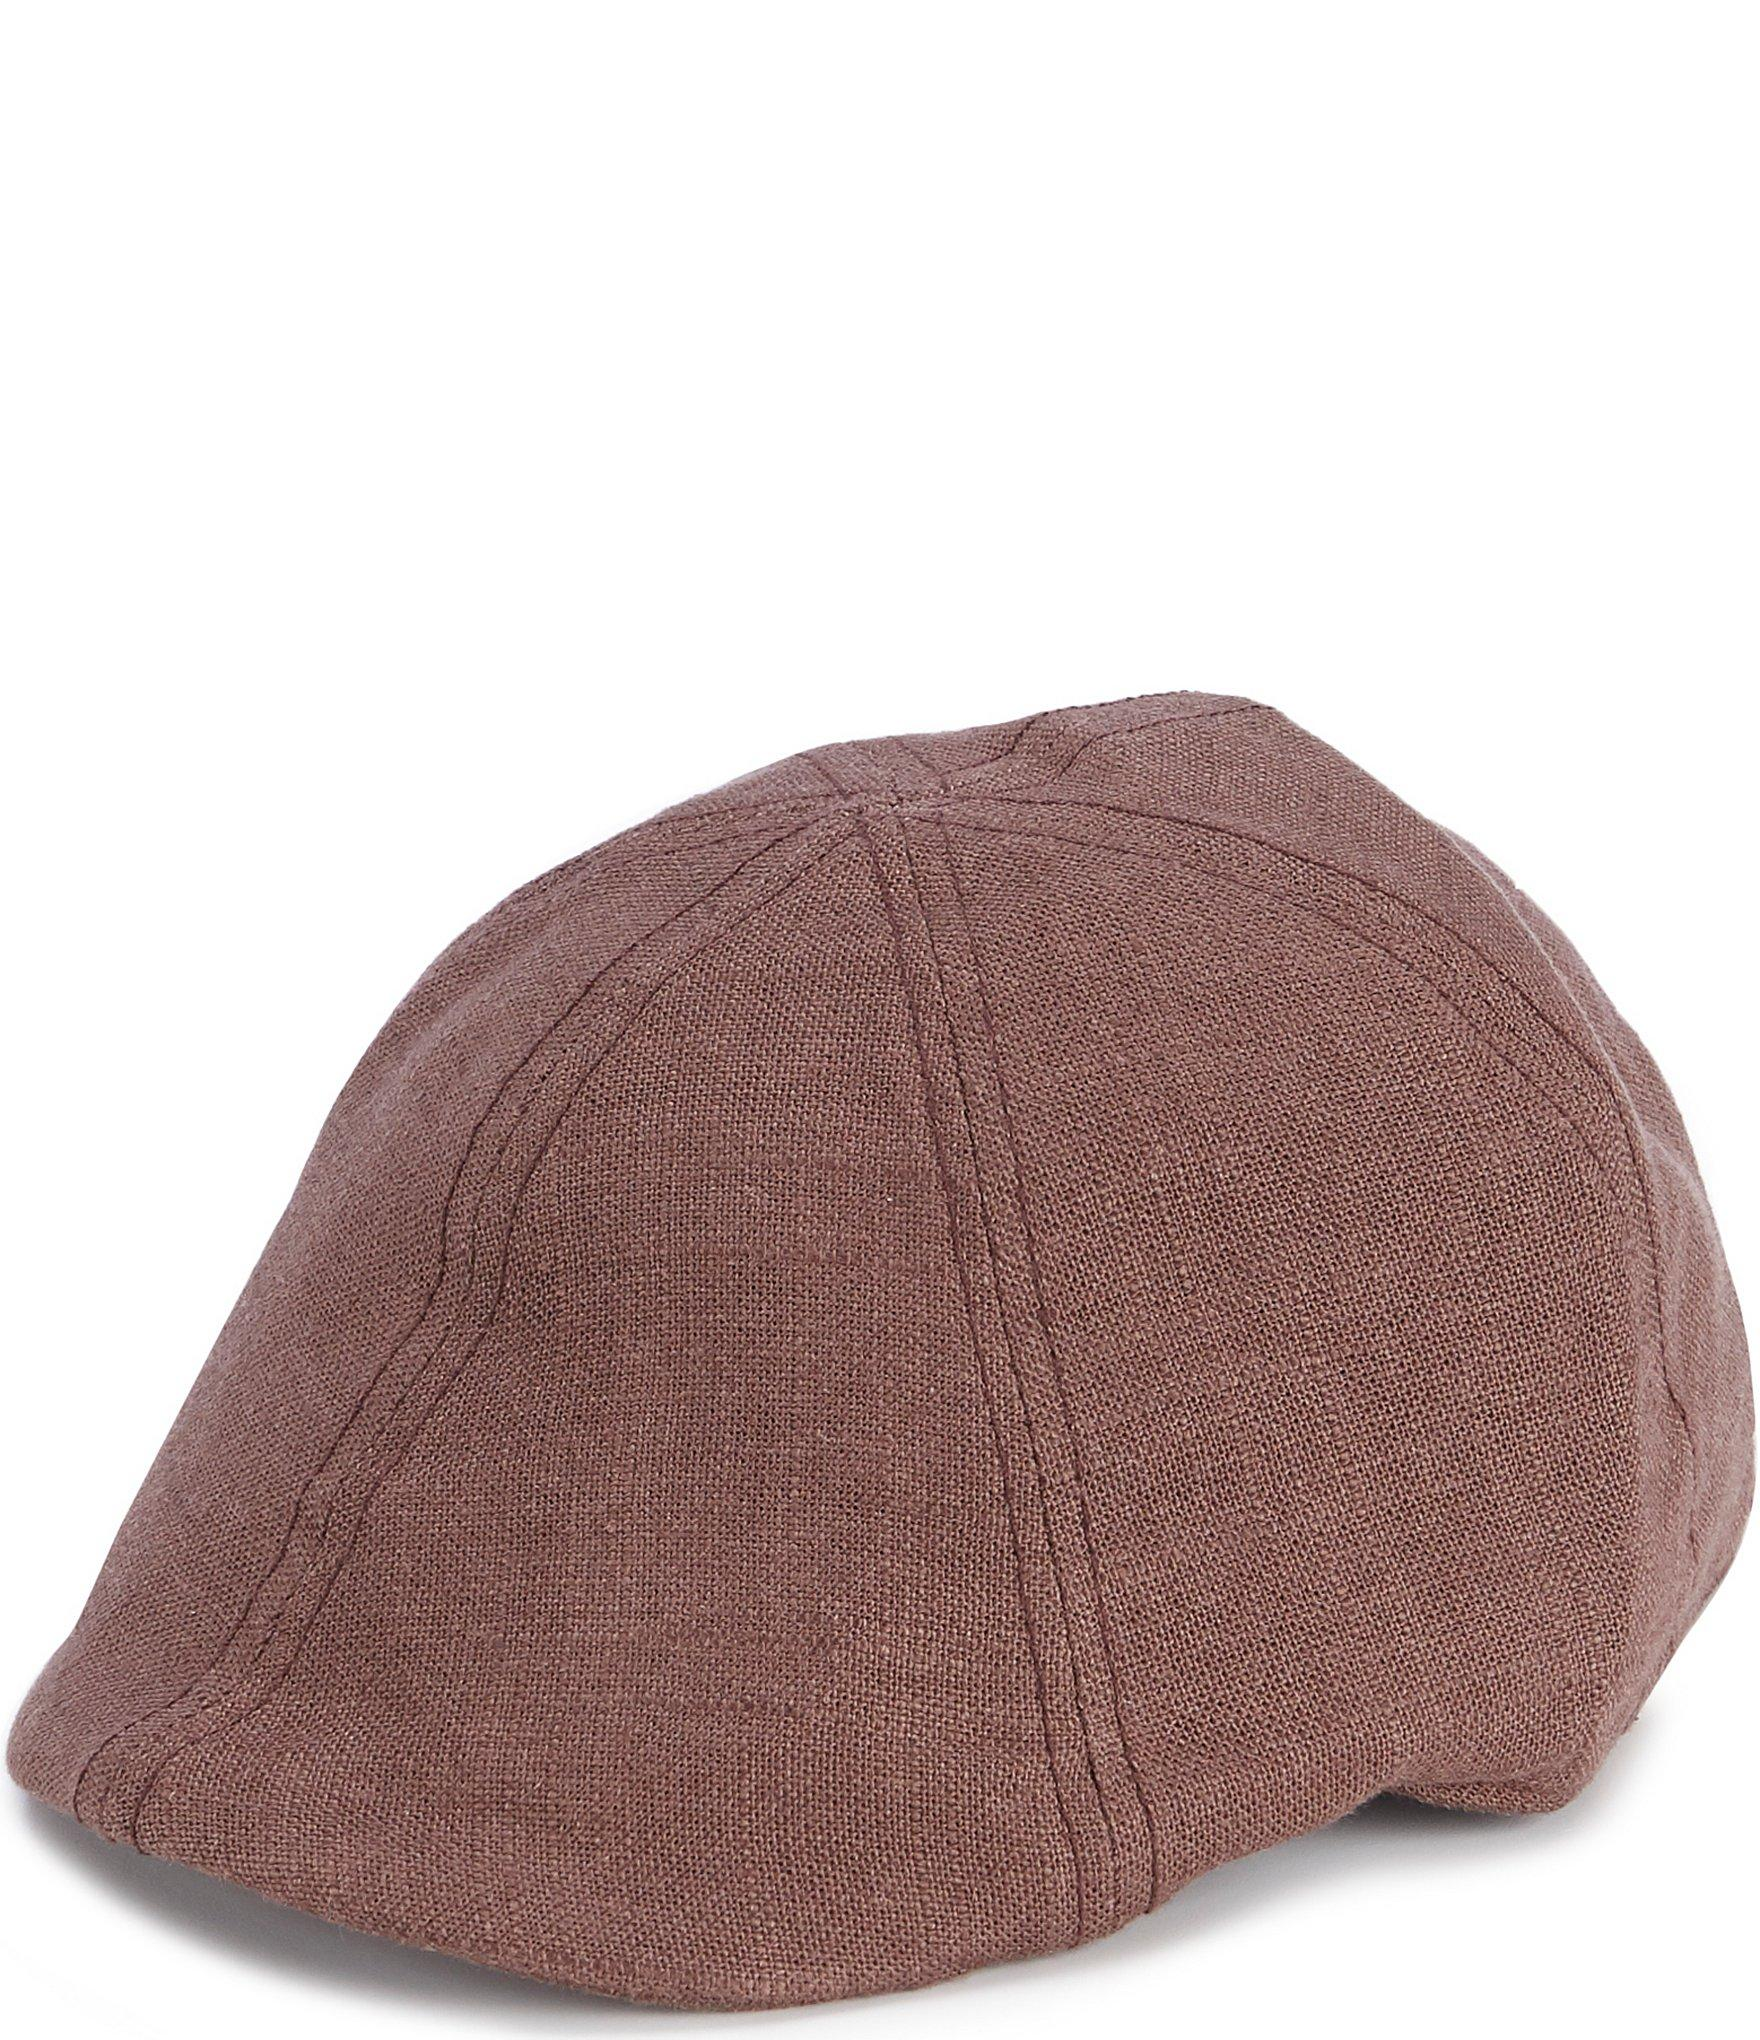 6f21cee3 Cremieux Burlap Driver Hat in Brown for Men - Save 30% - Lyst